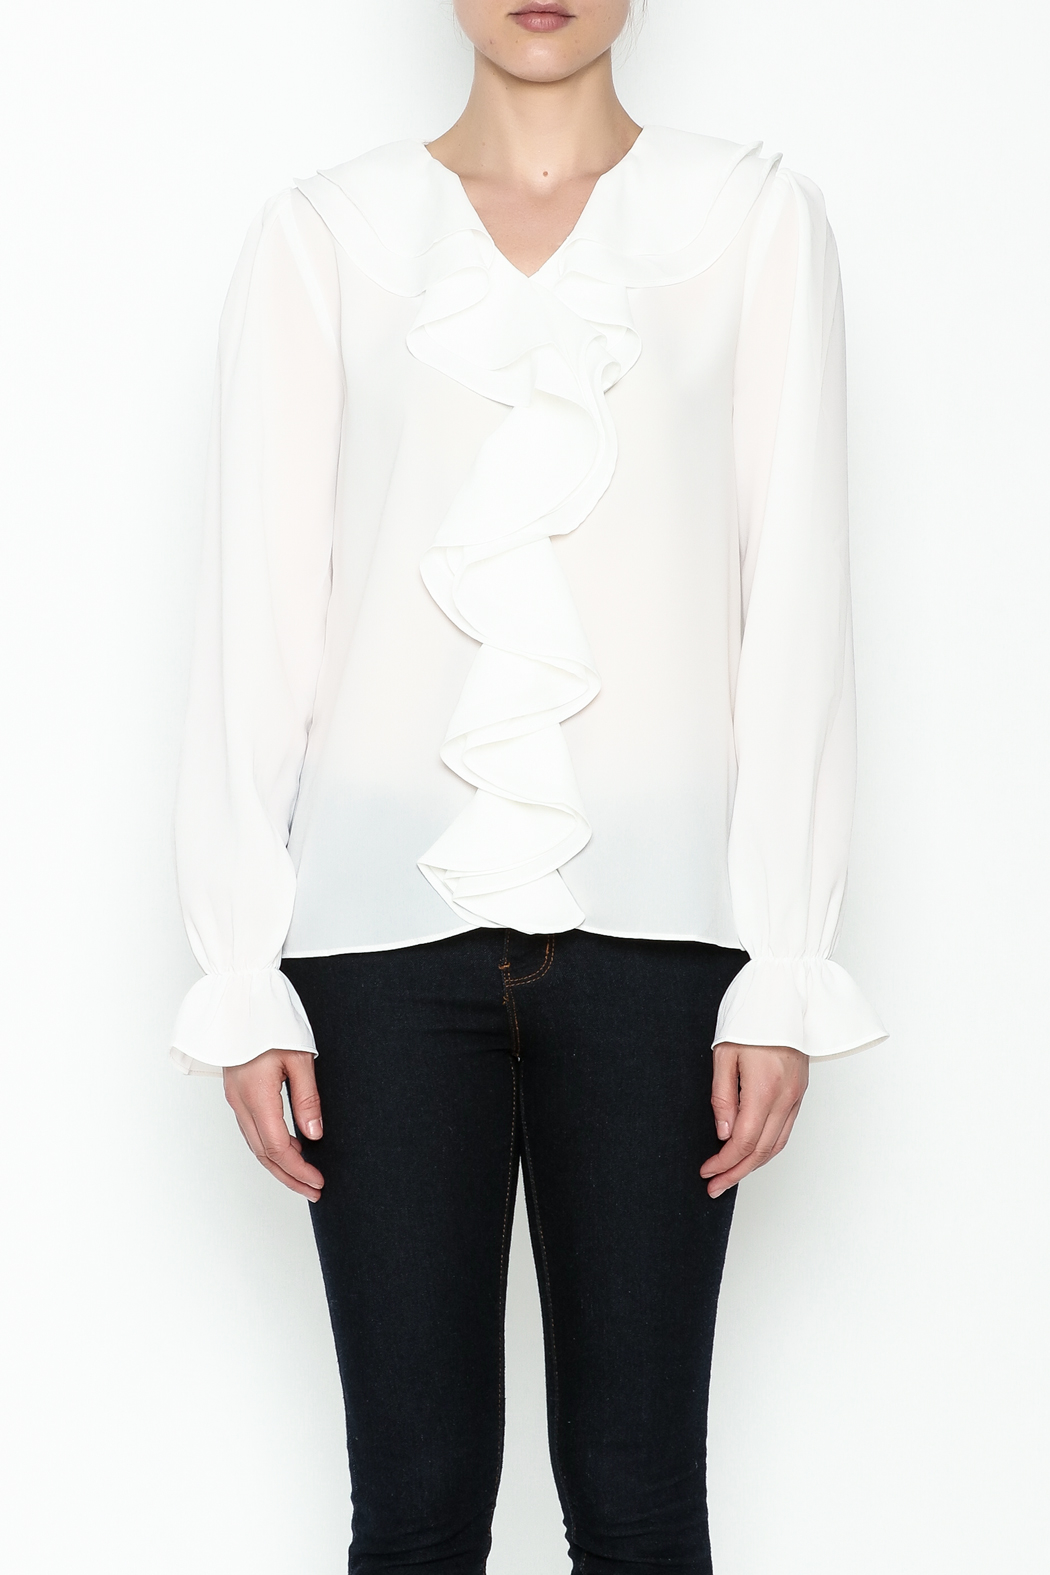 Moon Ruffle White Blouse - Front Full Image